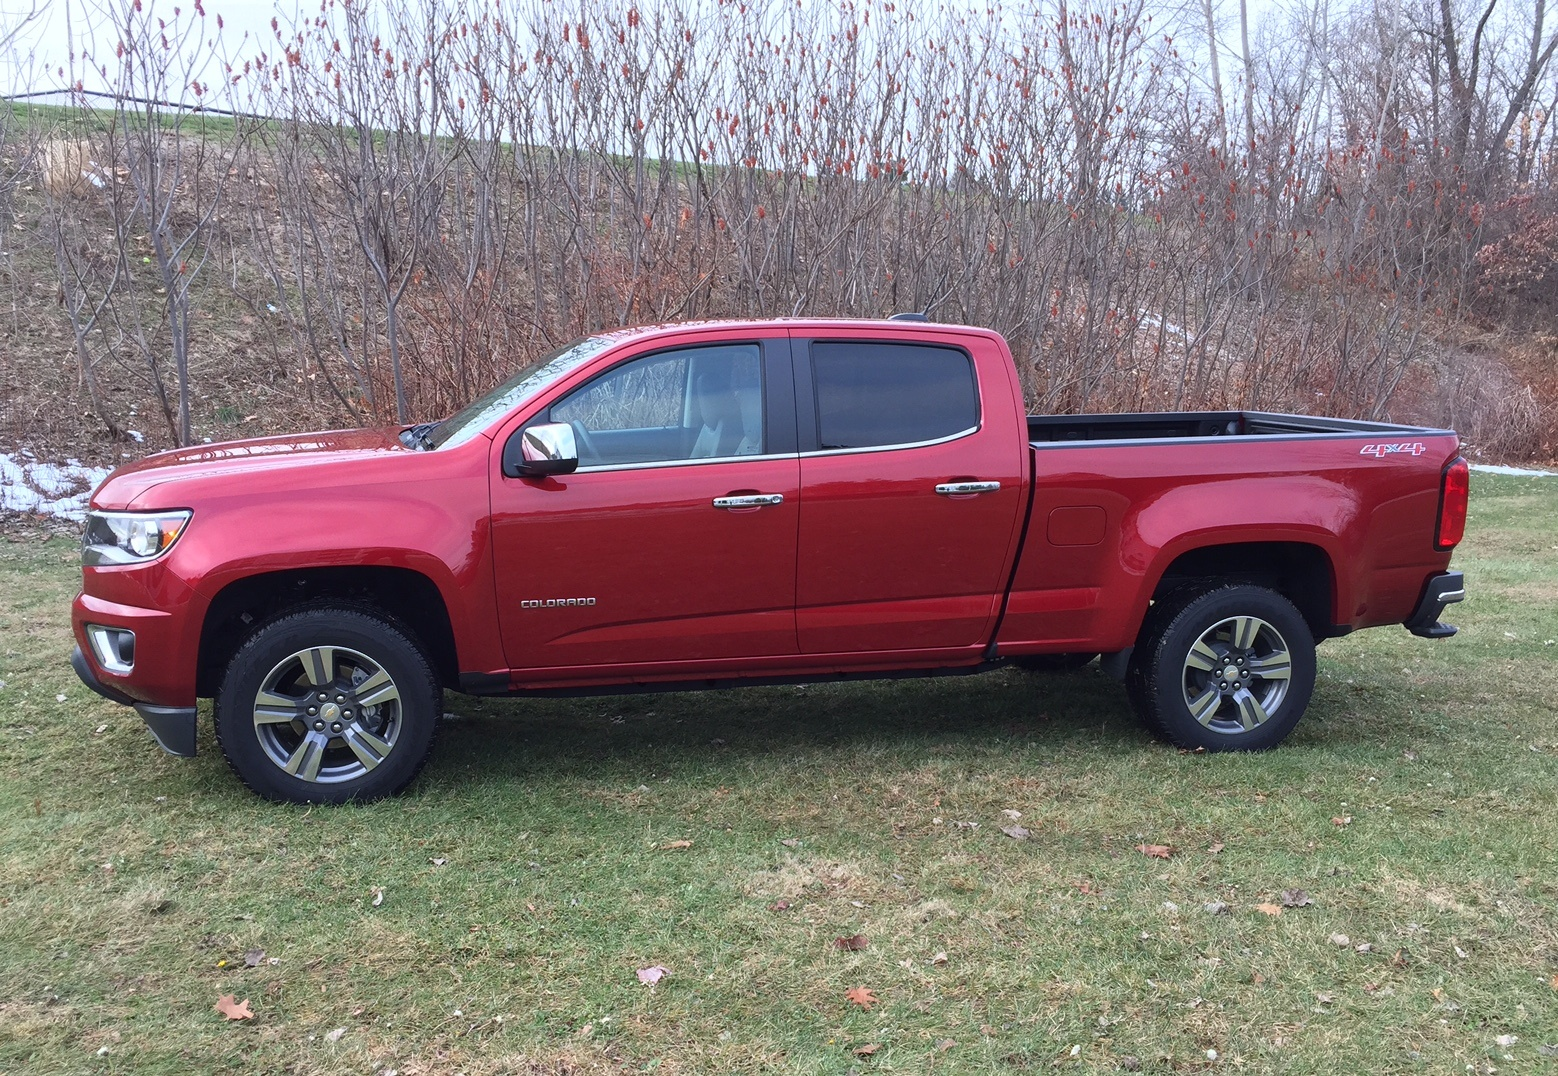 How Long Is 2015 Chevy Colorado Long Box Vs Short Box | Autos Post